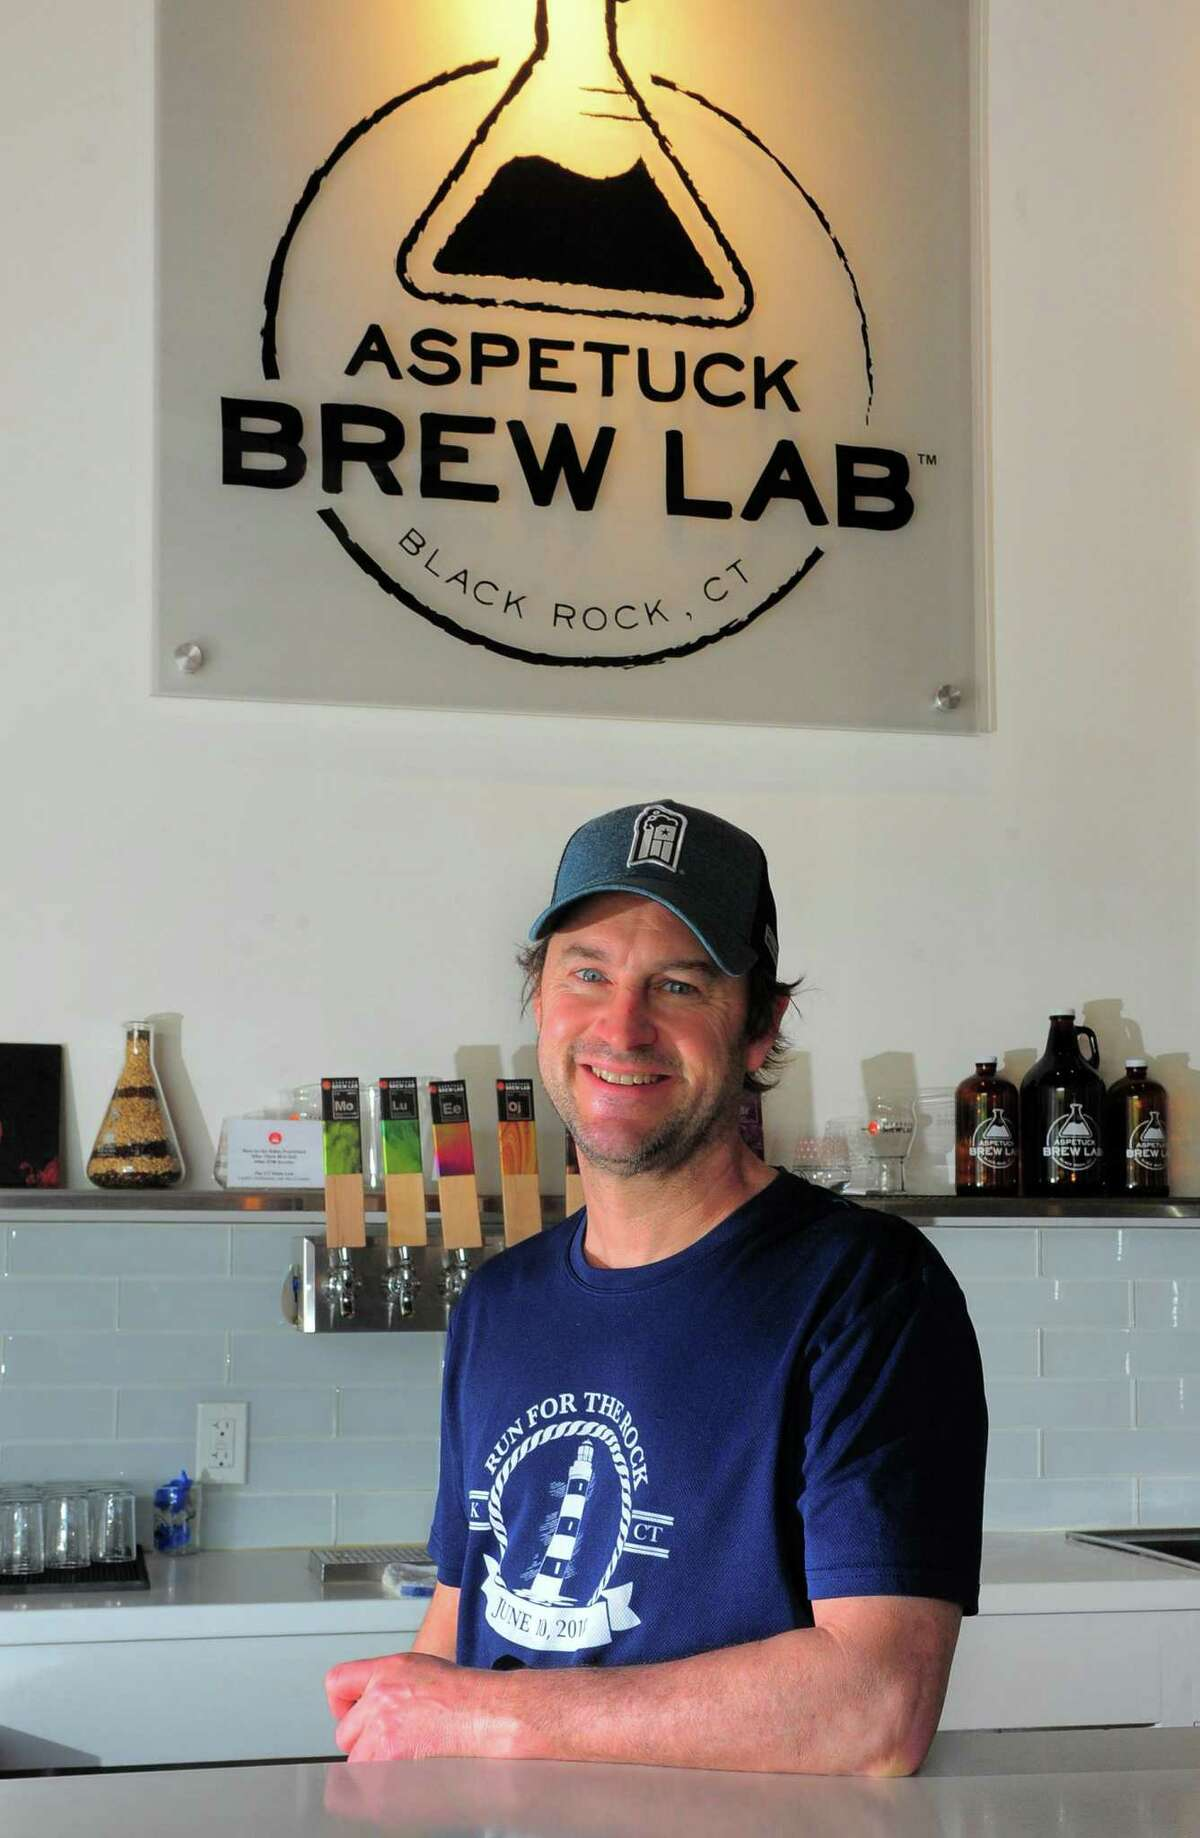 Aspetuck Brew Lab co-owner Peter Cowles poses at the brewery in Bridgeport, Conn., on Thursday May 14, 2020. Cowles was one of a handful of Bridgeport business leaders and business owners statewide who recently signed a letter urging Gov. Lamont move more quickly to reopen restaurants.